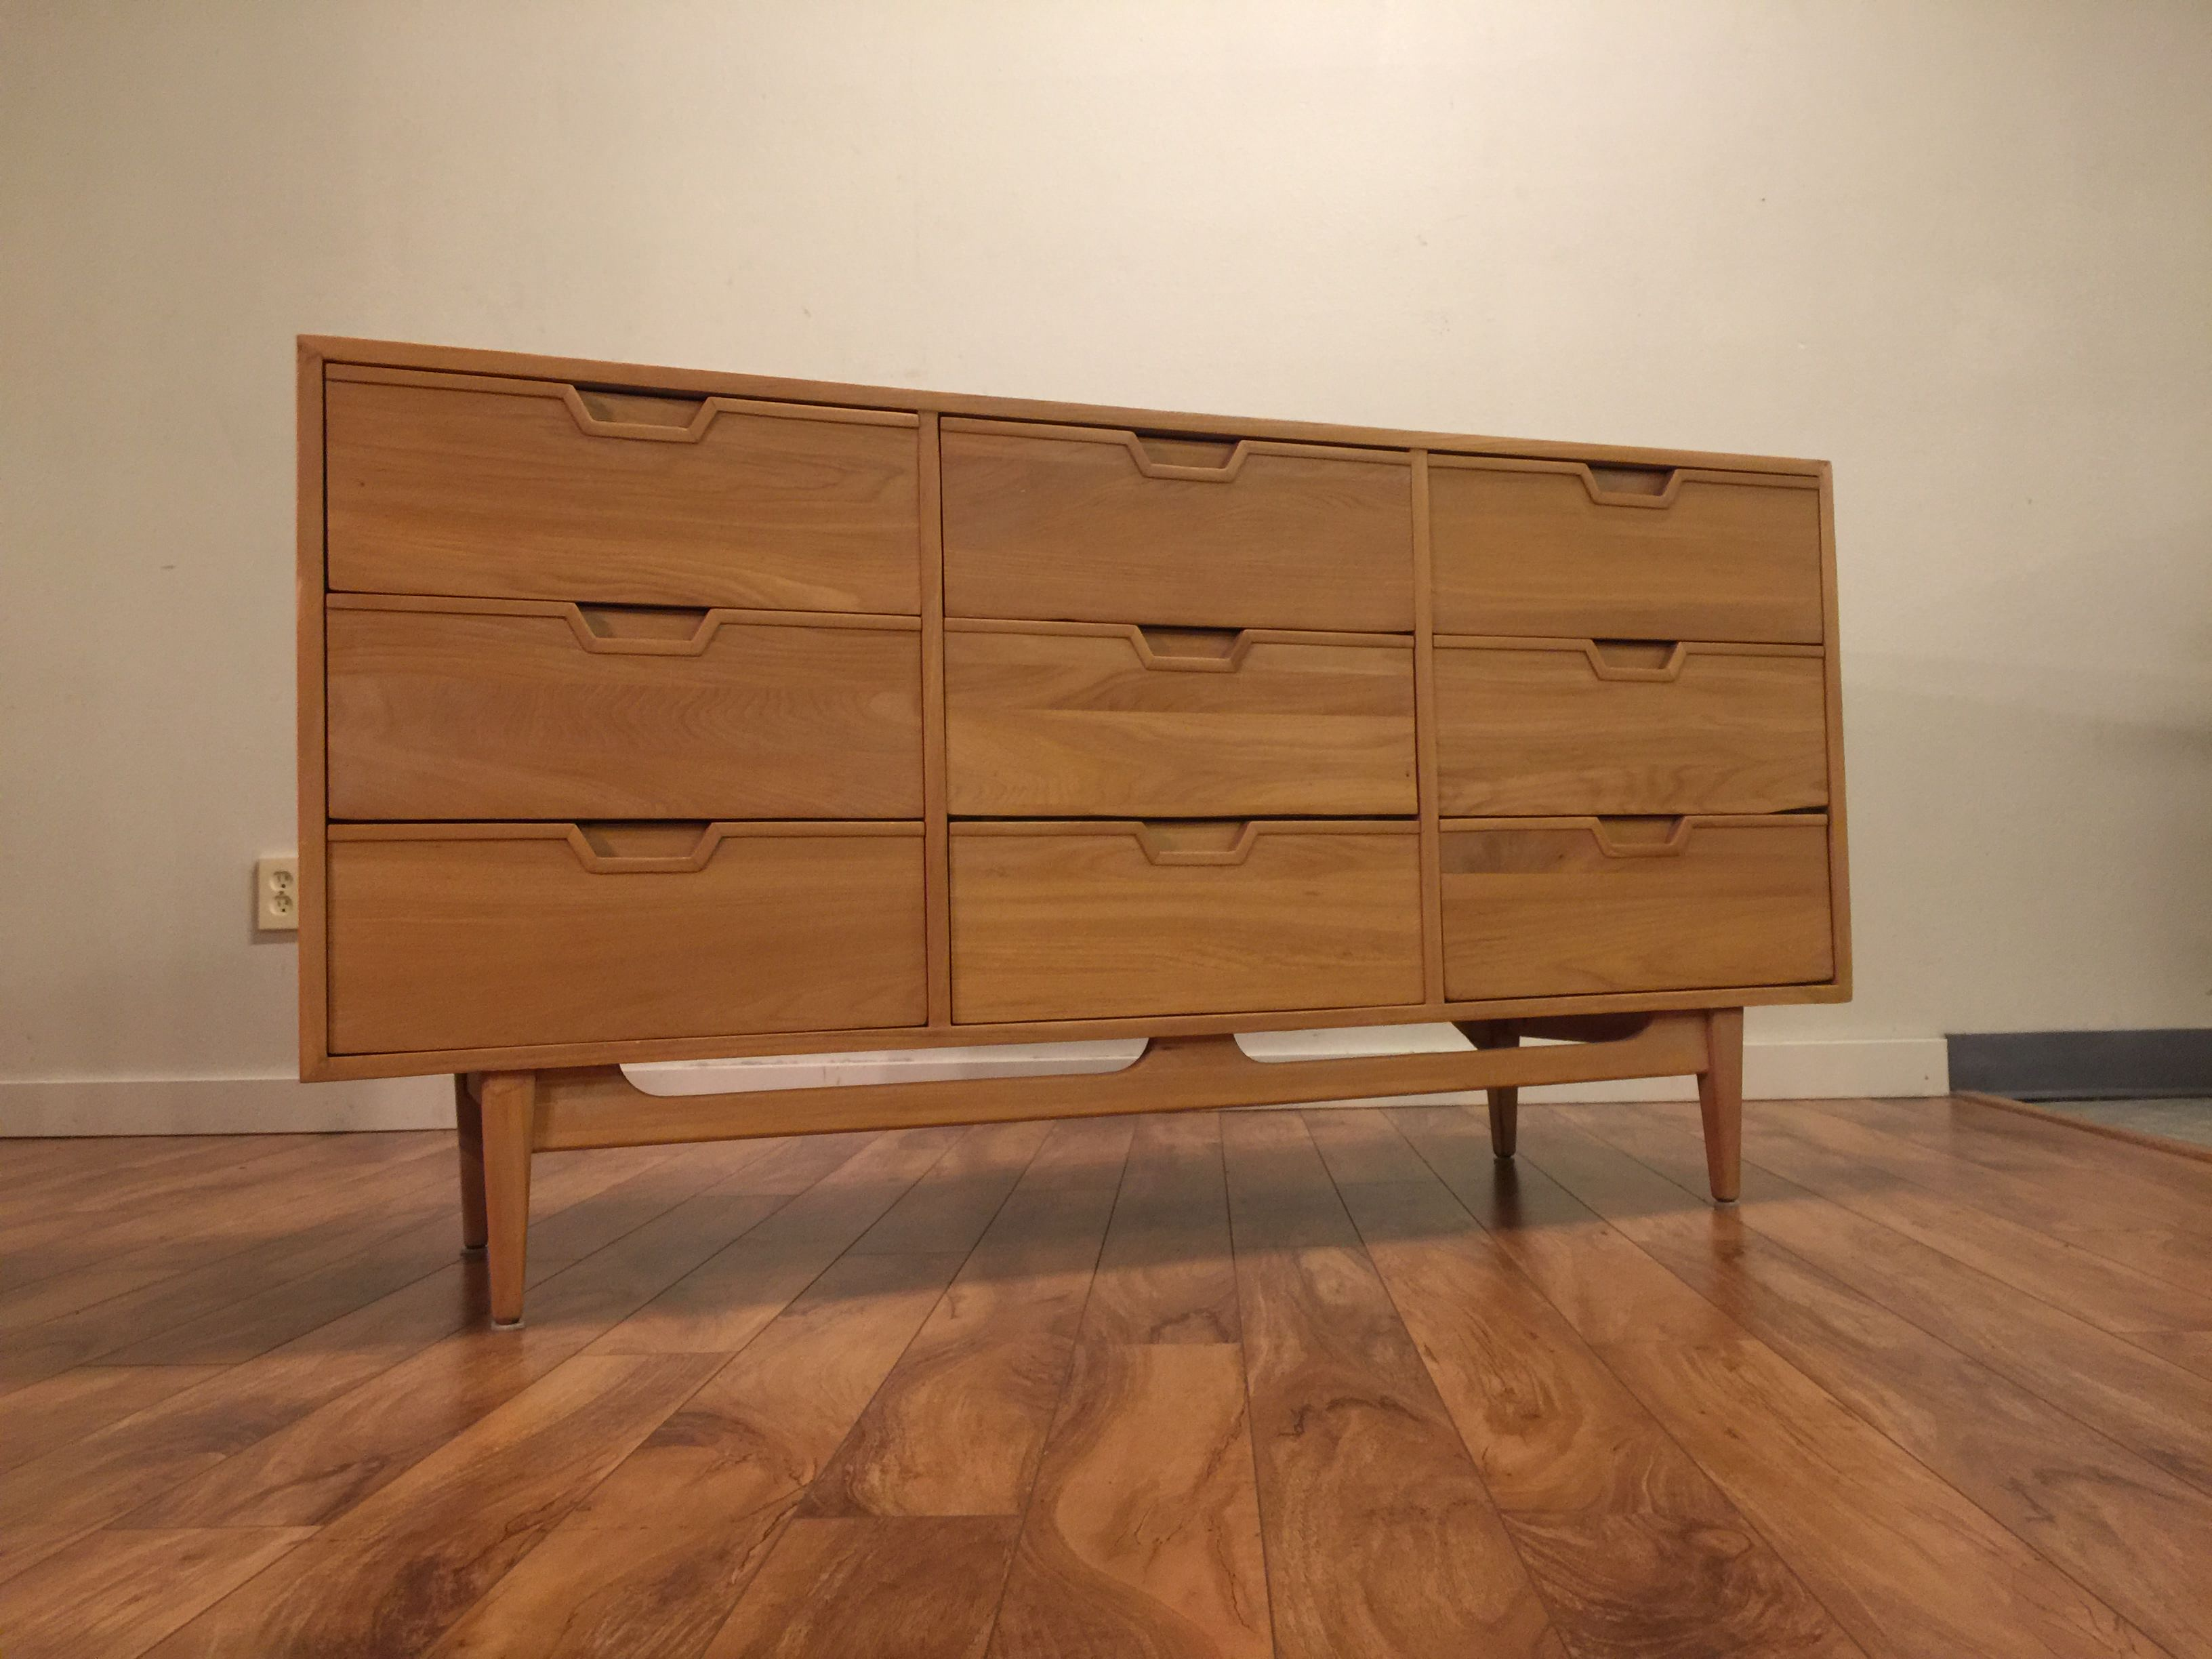 Wood Art Sold - Solid Wood 9 Drawer Dresser - Modern To Vintage